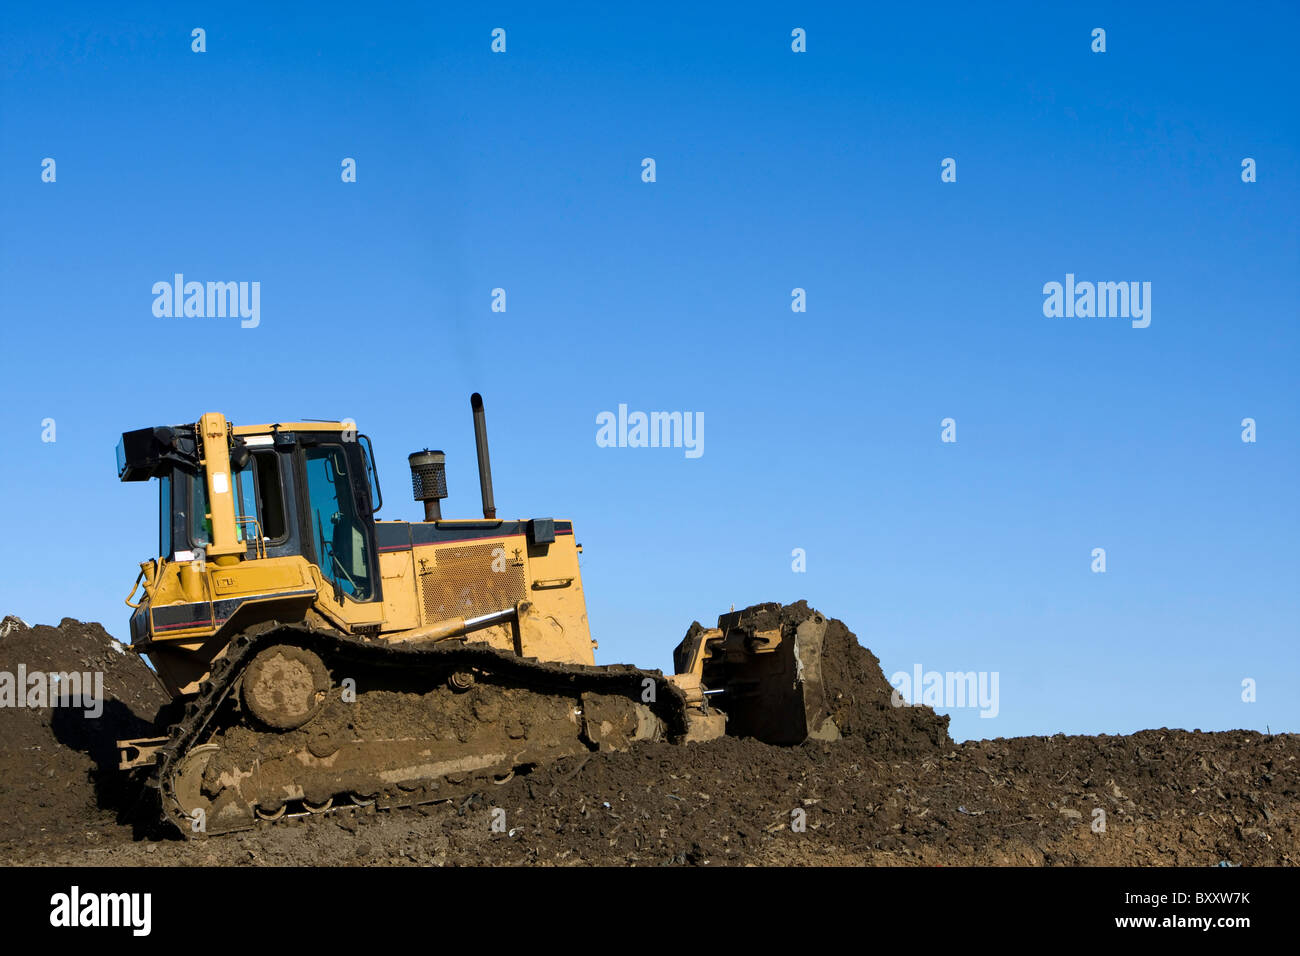 Bulldozer in operation moving dirt and clearing the land. Room for copy above. - Stock Image